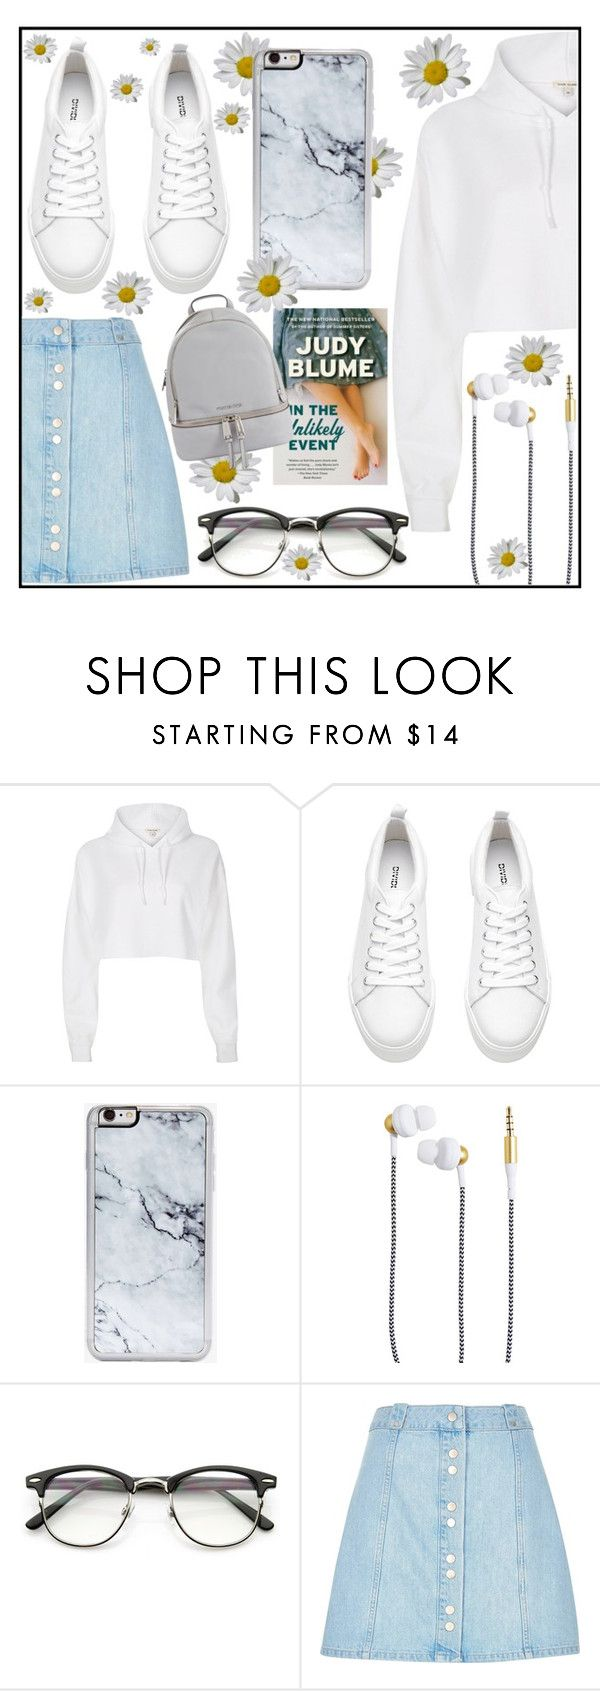 """""""...in the unlikely event."""" by cupcakesweetieme ❤ liked on Polyvore featuring River Island, Zero Gravity, Kreafunk and MICHAEL Michael Kors"""